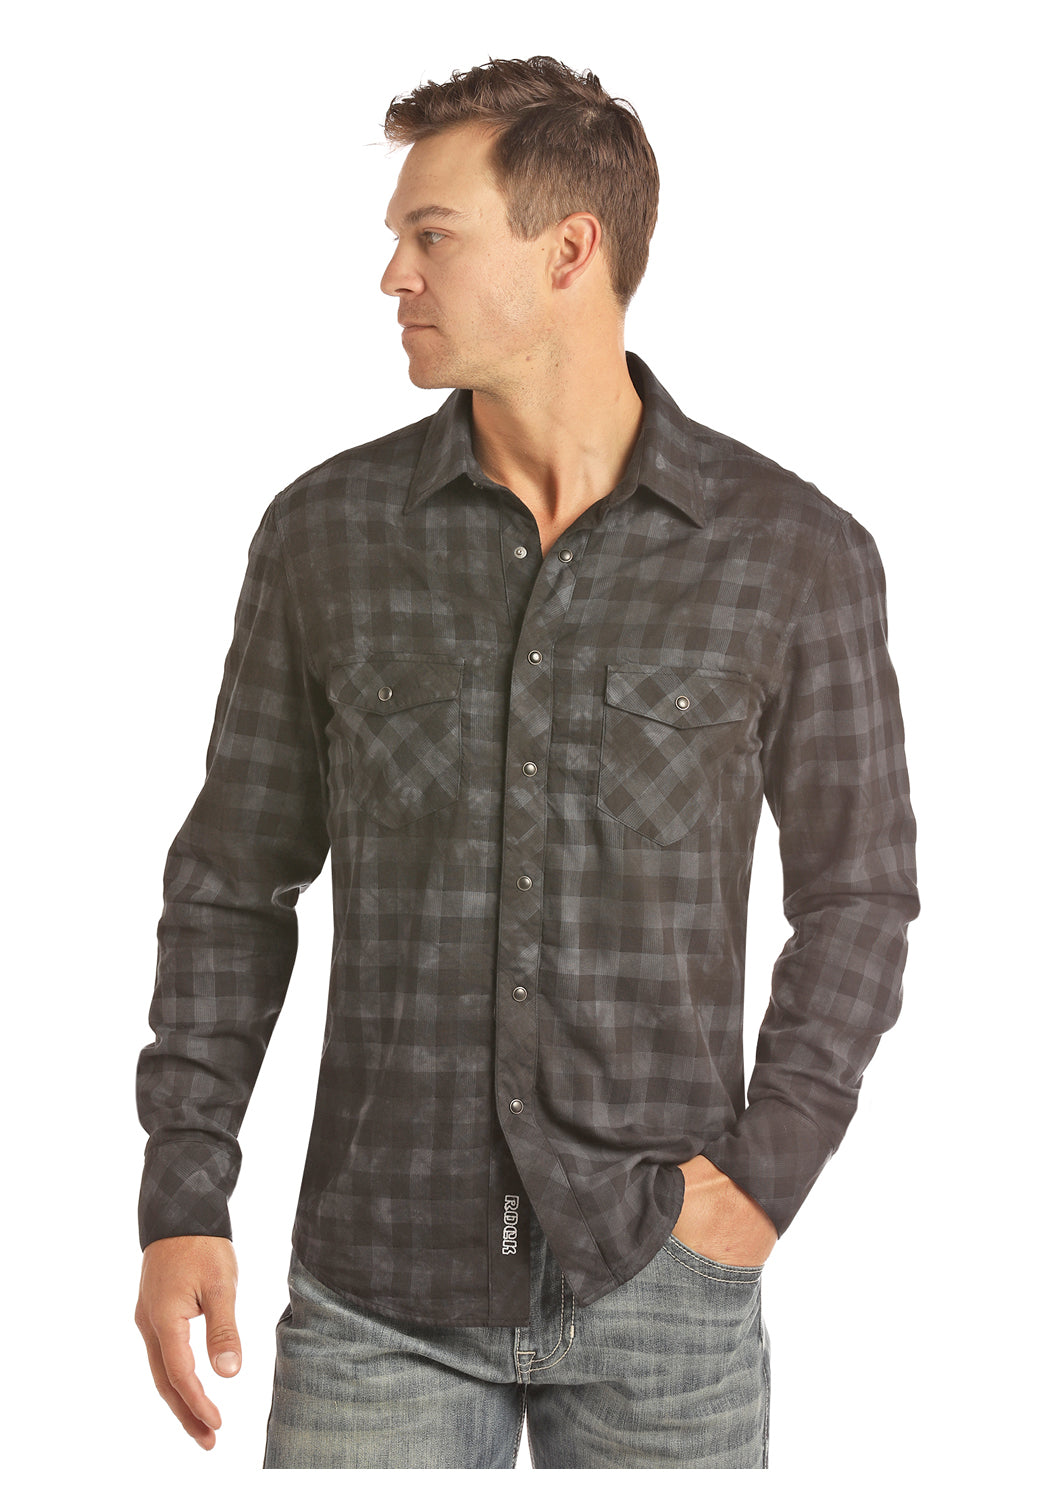 'Rock & Roll' B2S2302 -  LS Bleach Washed Plaid Snap - Black / Blue